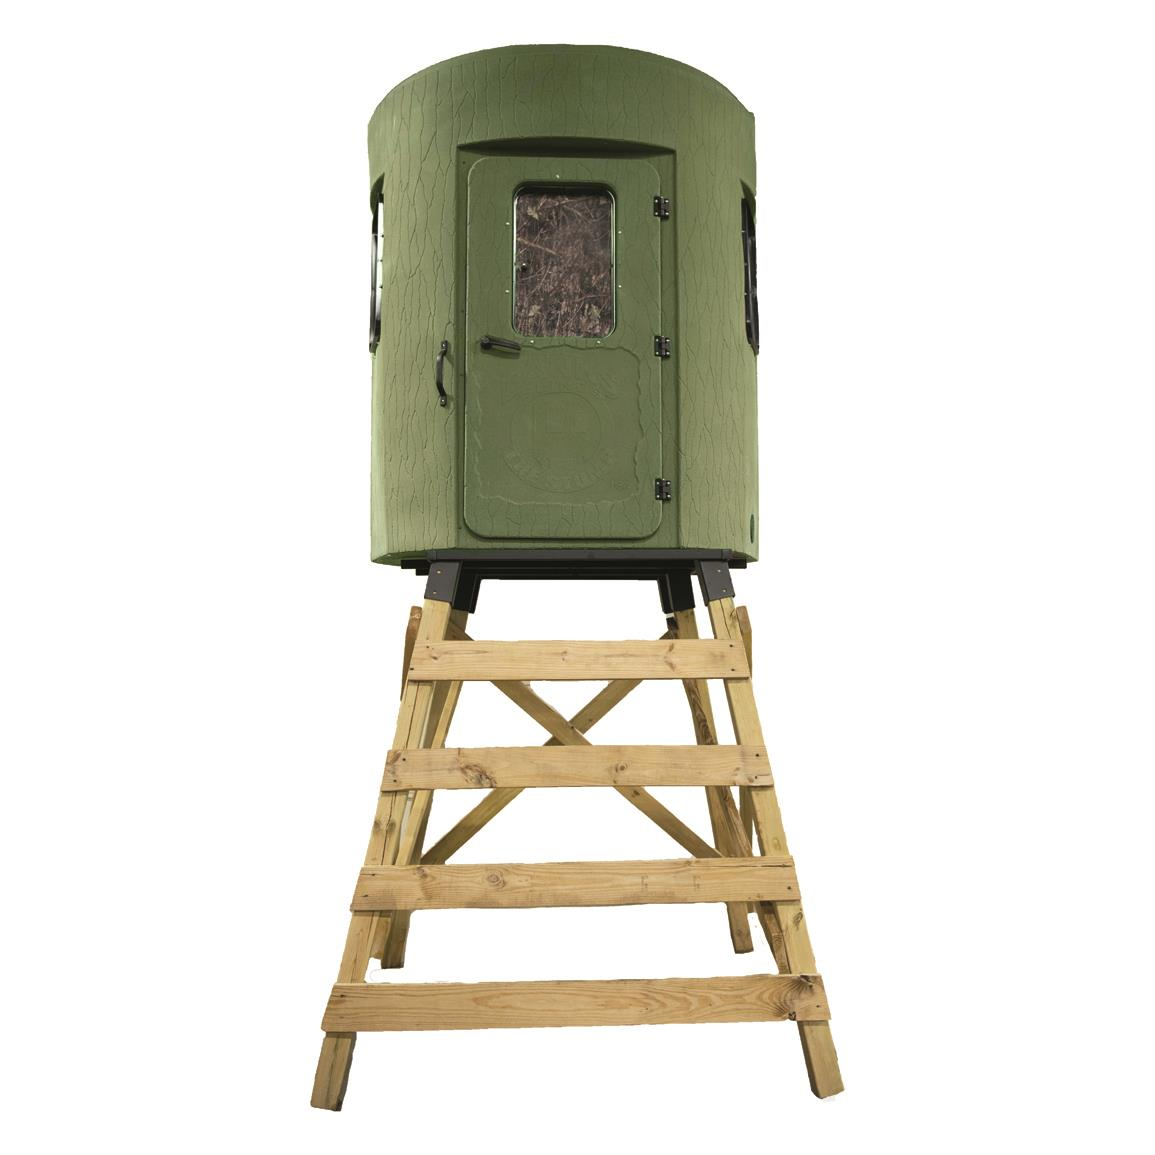 Banks Outdoors The Stump 3 NBS Tower-style Deer Stand